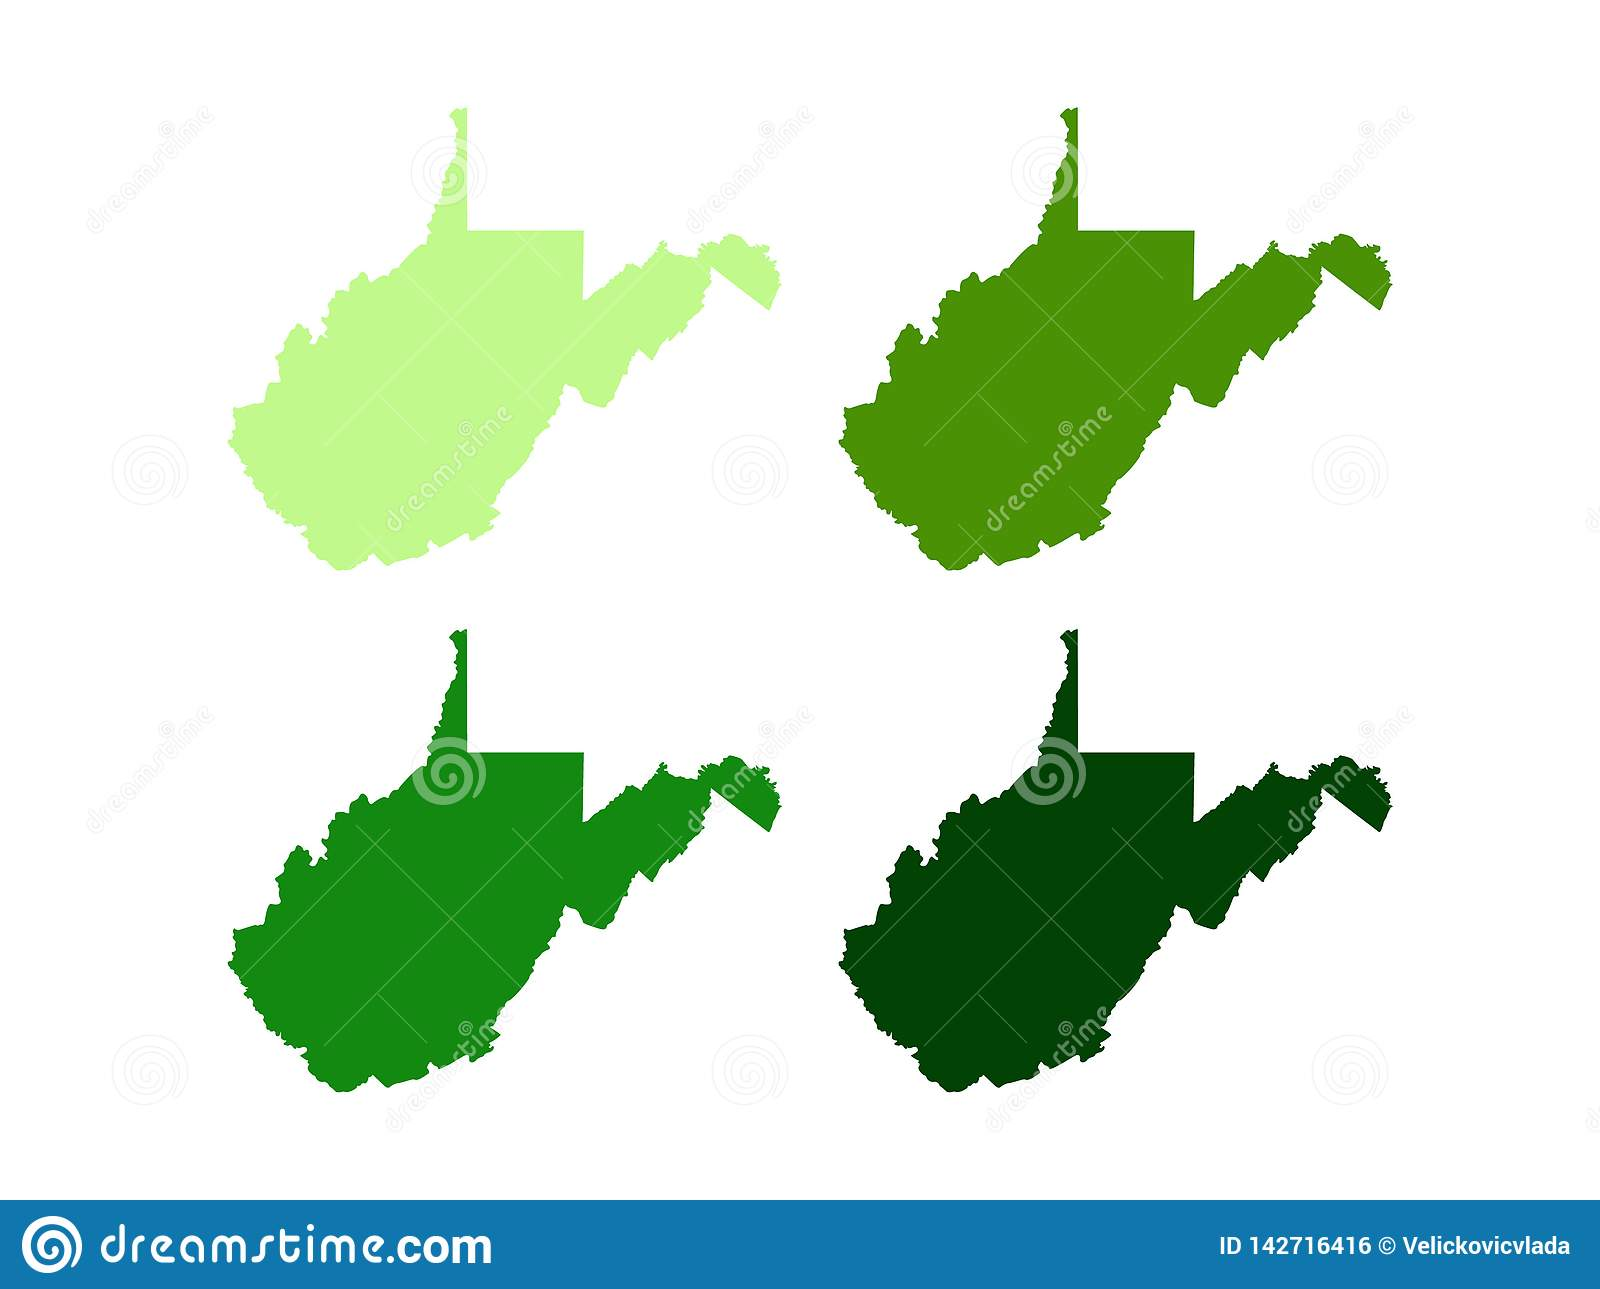 West Virginia Map - State Located In The Appalachian Region In The ...